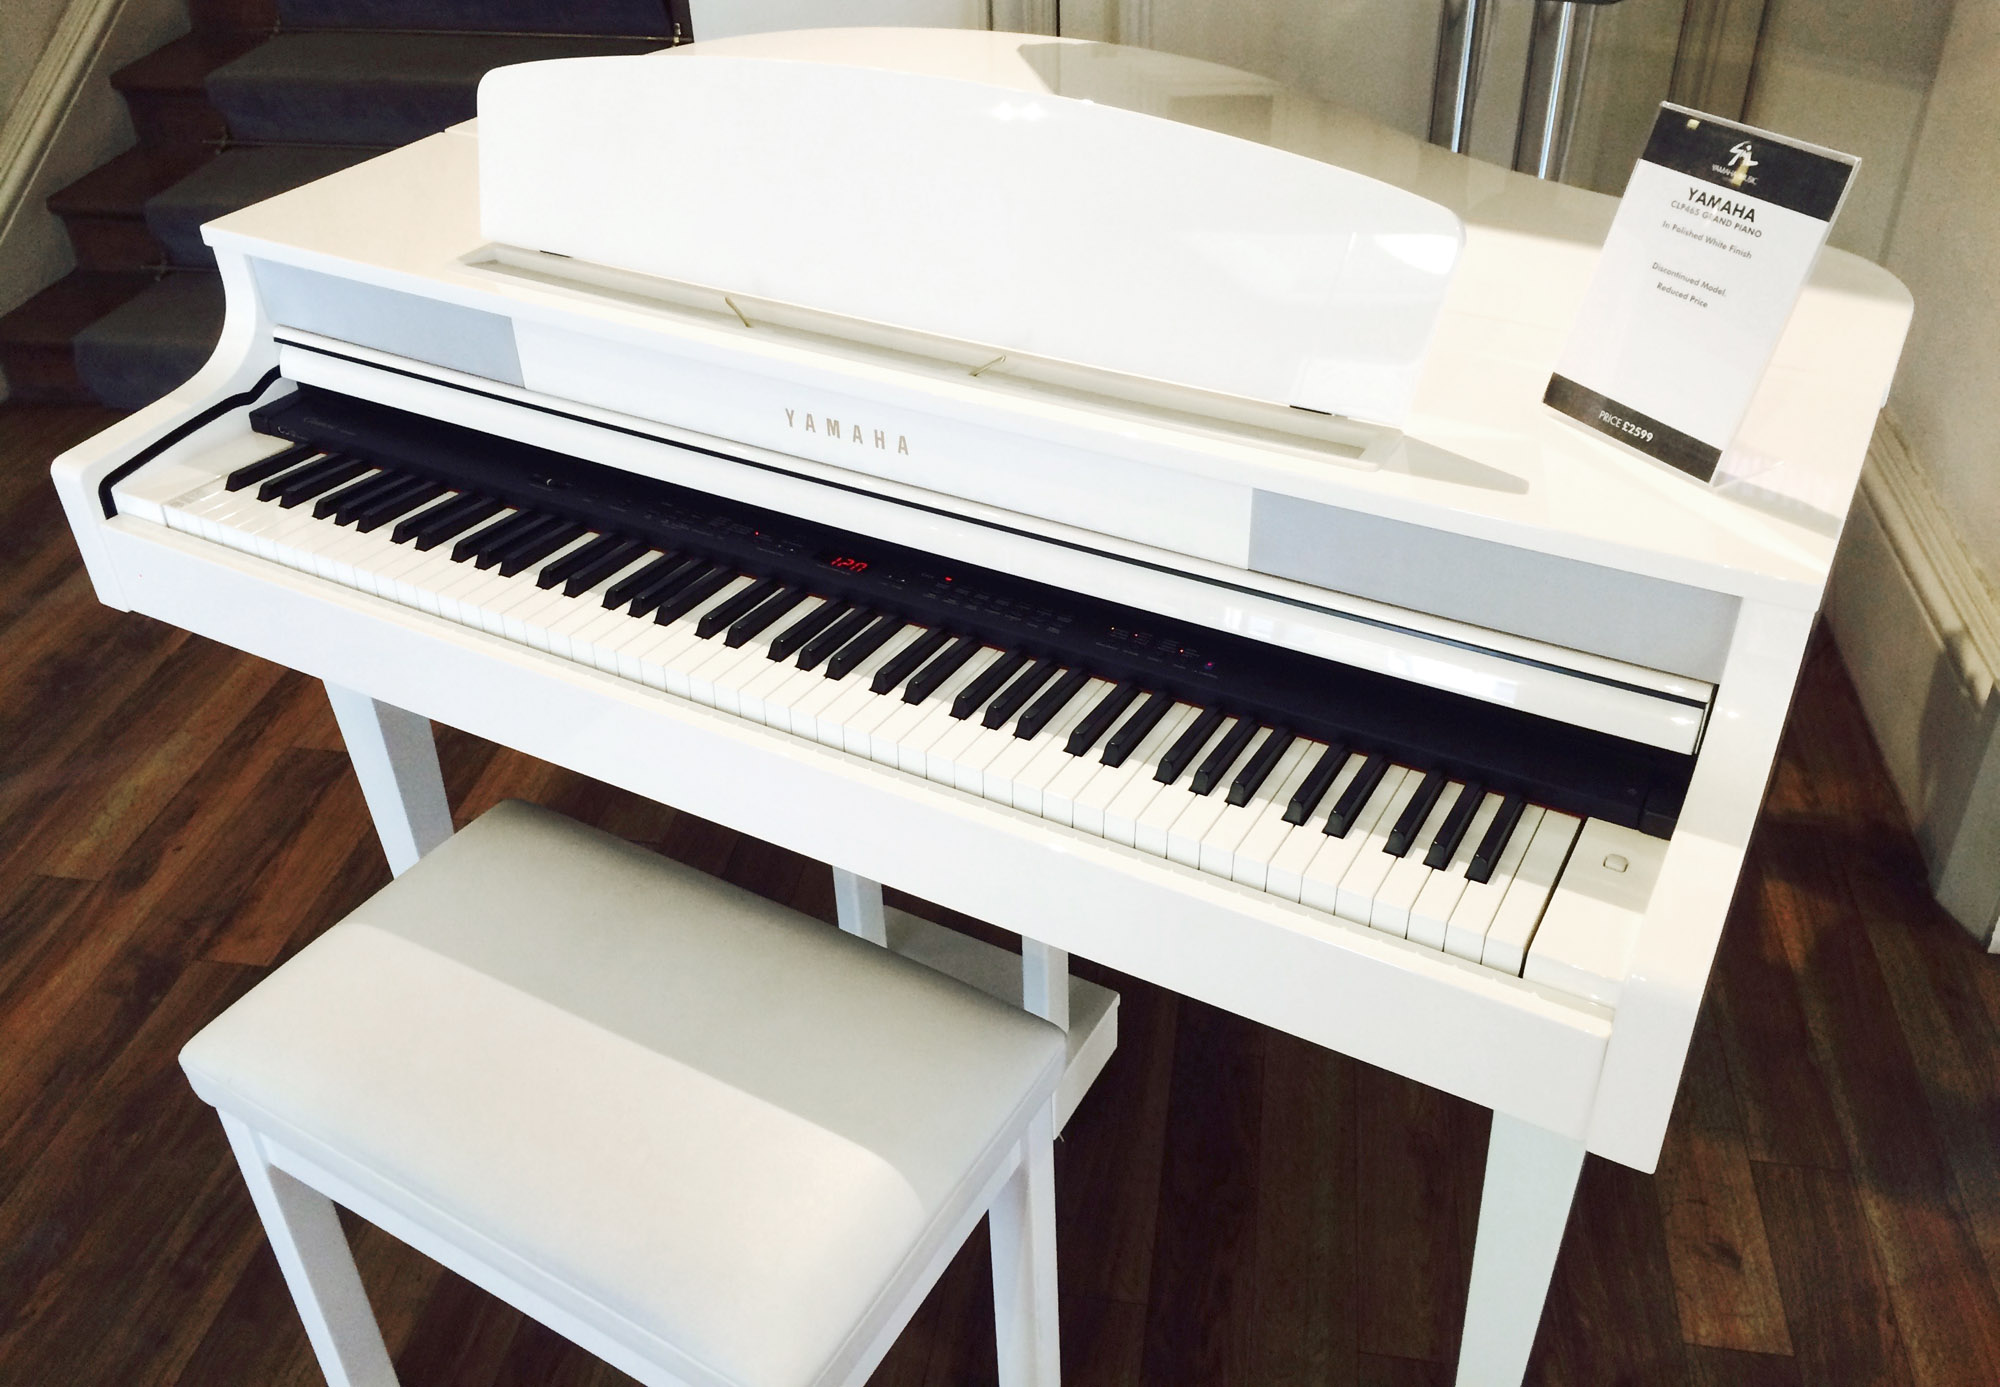 Yamaha ex display clp 465gp clavinova digital piano in for White yamaha piano